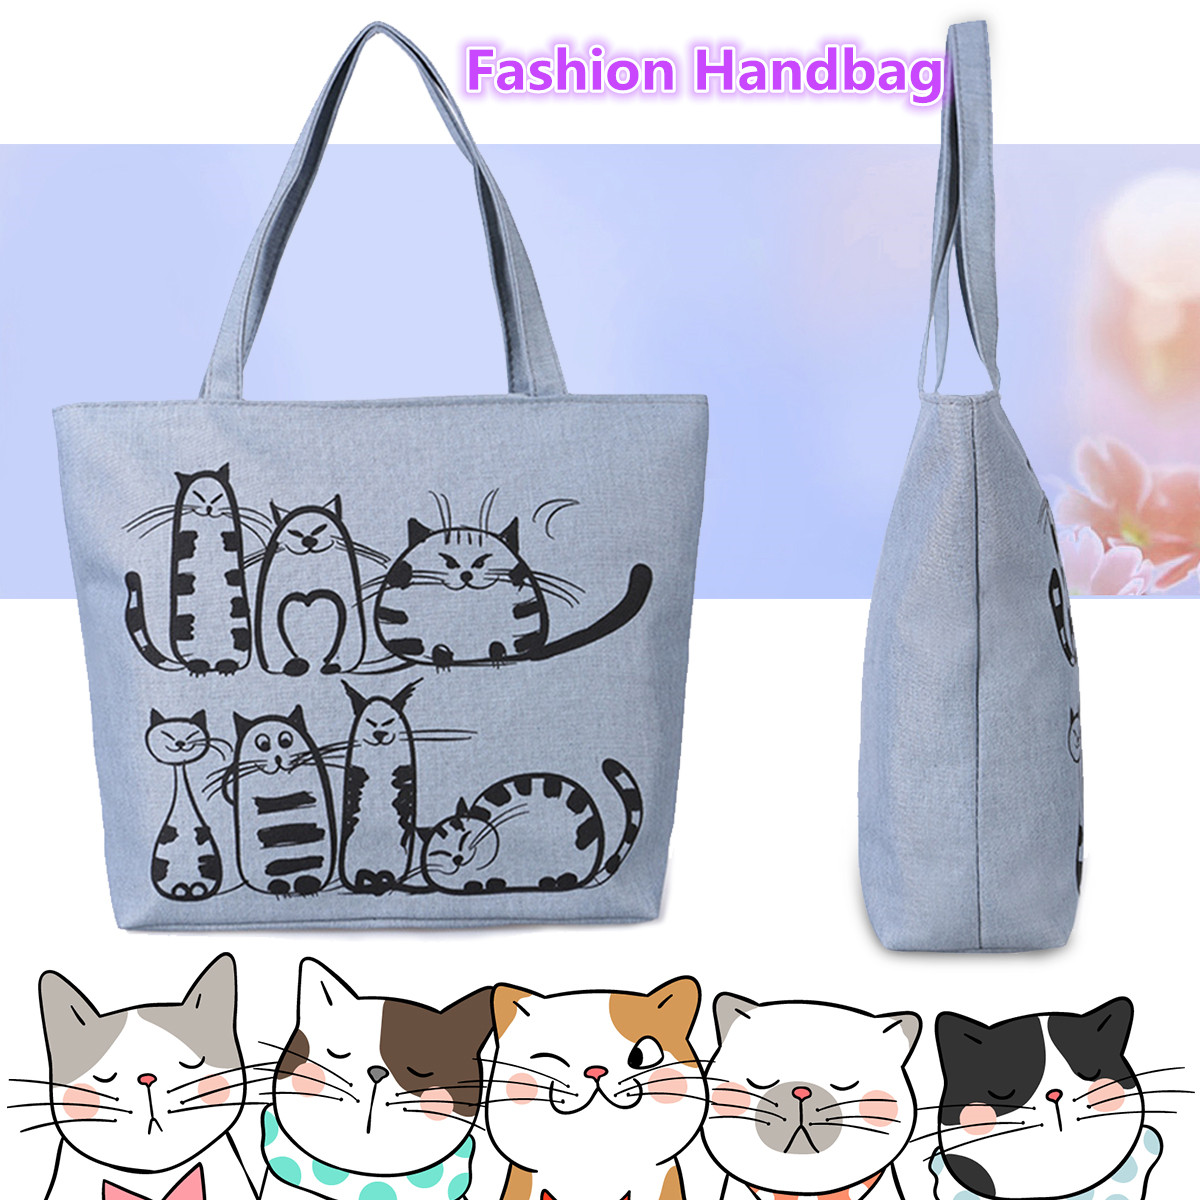 New Reusable Shopping Bag Fashion Women Canvas Tote Bags Printing Eco Bag Cartoon Bolsa De Compras Shopper Shoulder Bags